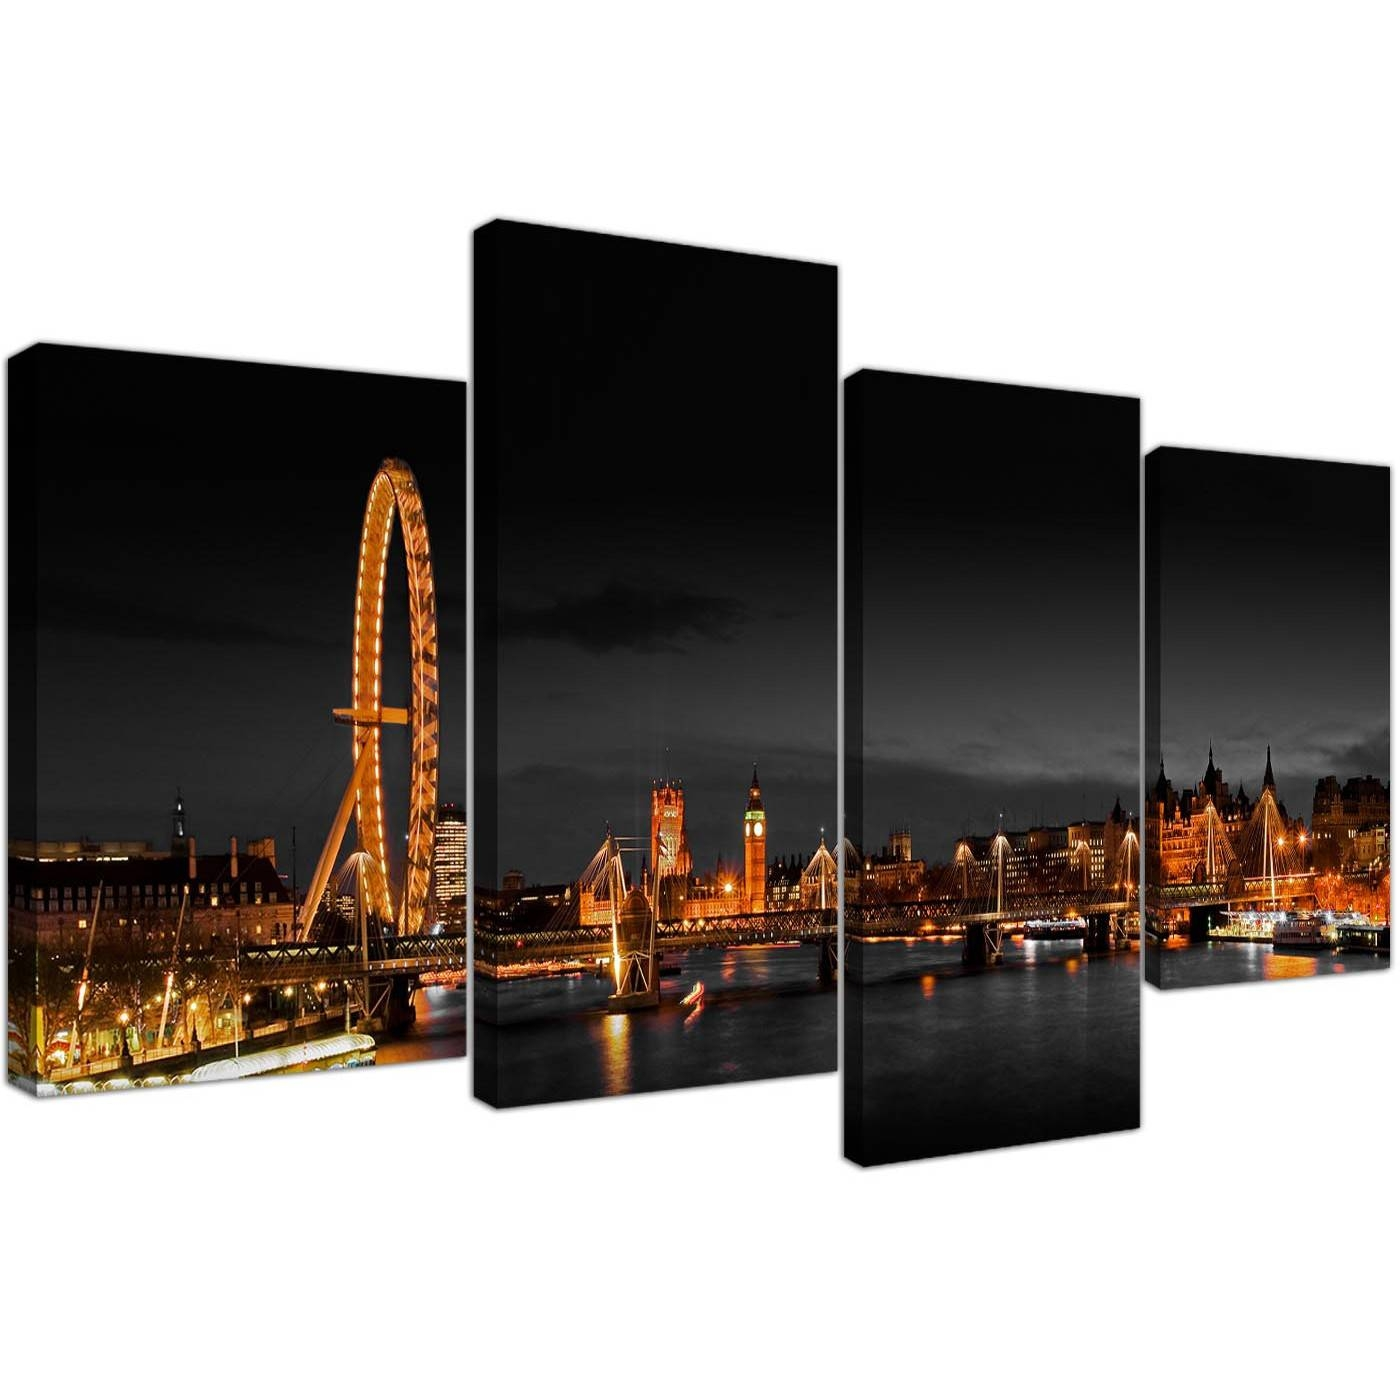 Canvas Wall Art Of Night Time London Eye For Your Office – Set Of 4 Throughout Most Popular London Scene Wall Art (View 3 of 20)